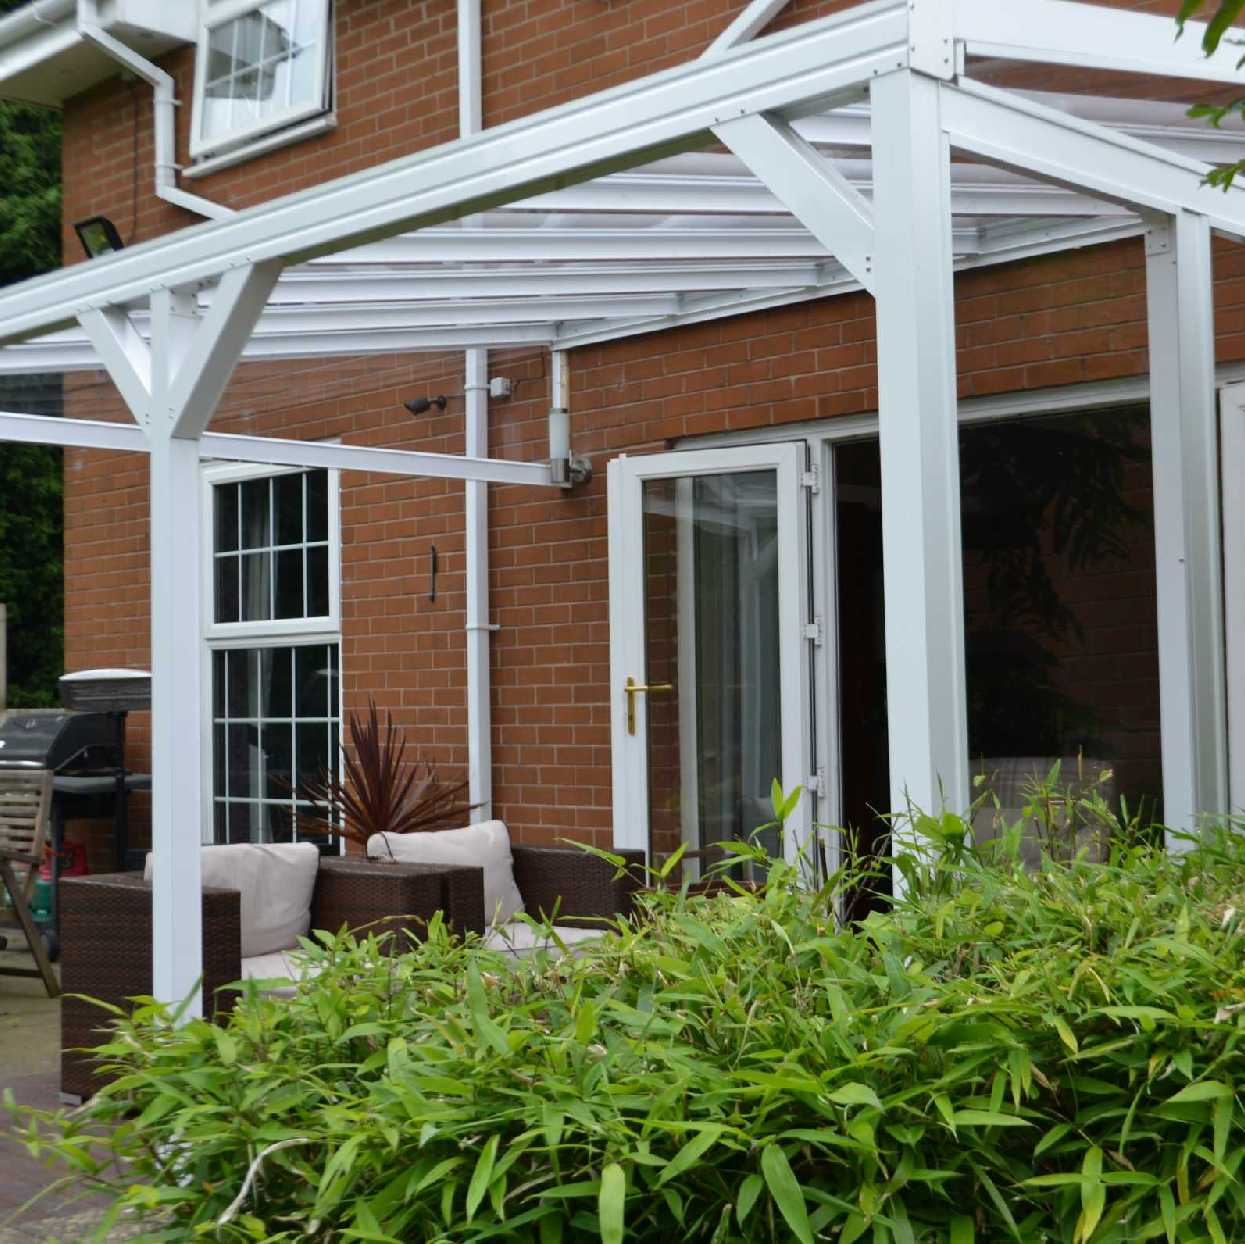 Omega Smart White Lean-To Canopy with 6mm Glass Clear Plate Polycarbonate Glazing - 2.8m (W) x 2.5m (P), (2) Supporting Posts from Omega Build